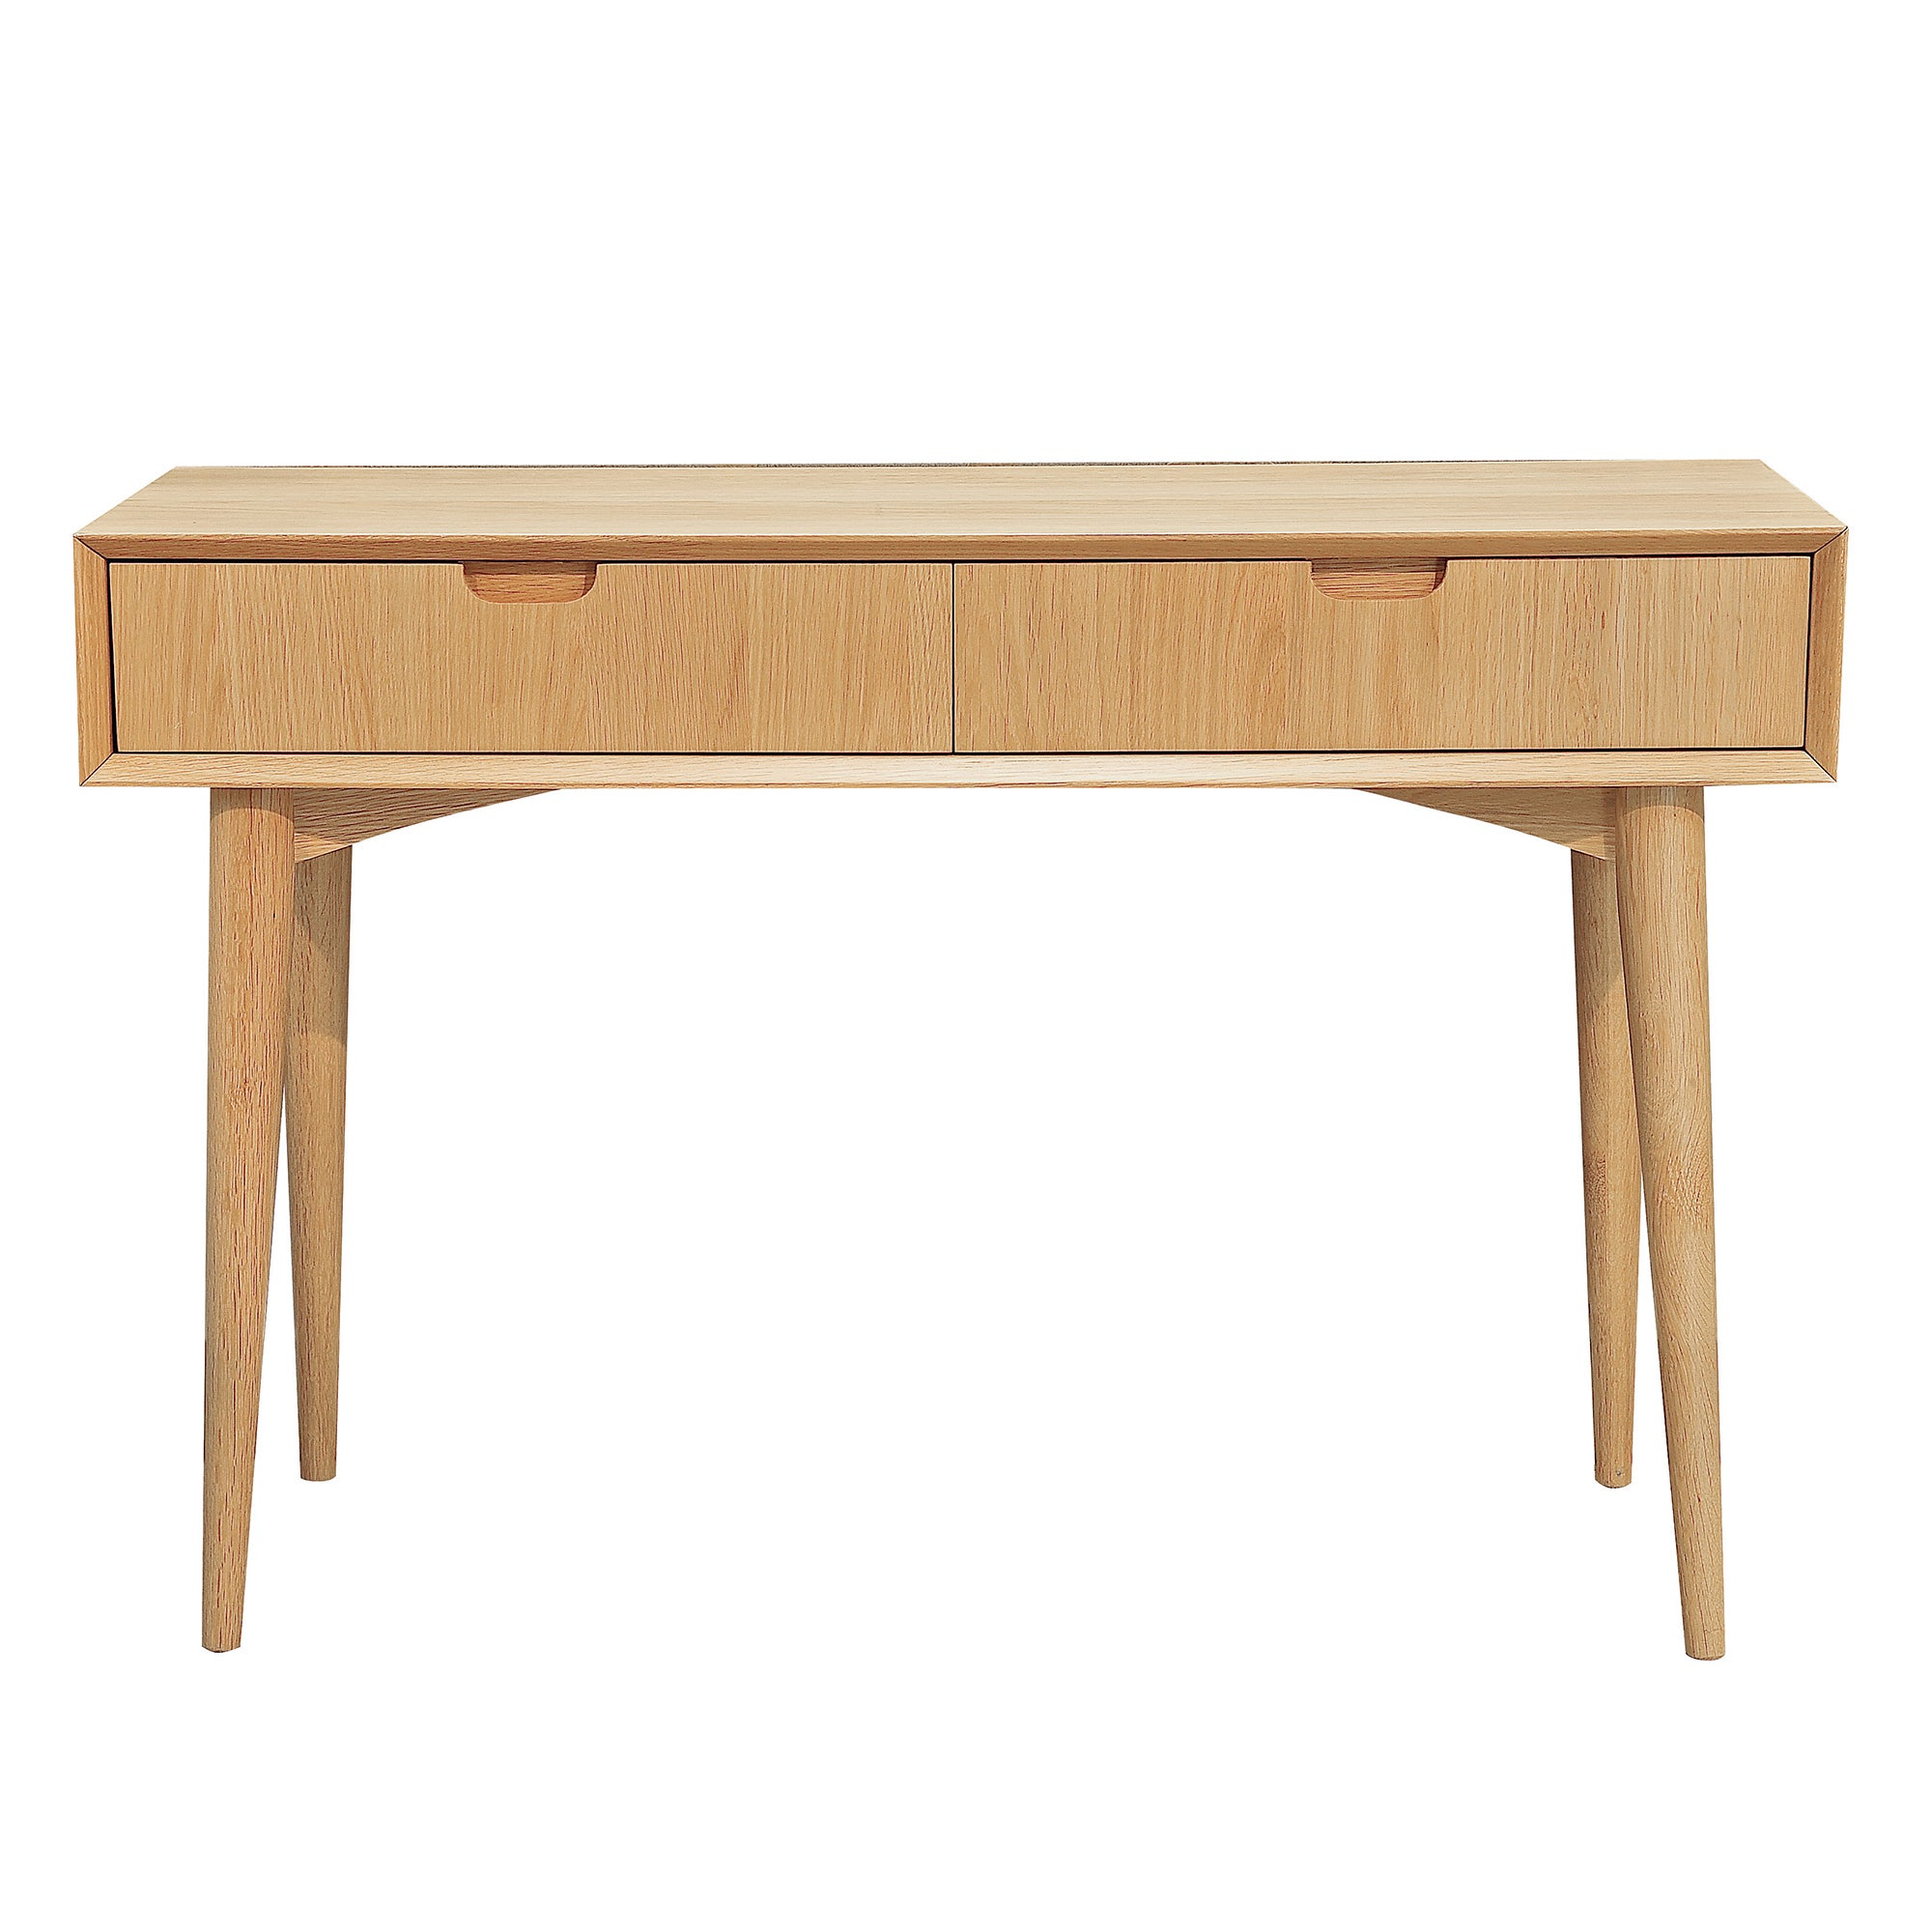 Skandi oak console table with drawer dunelm - Dunelm console table ...